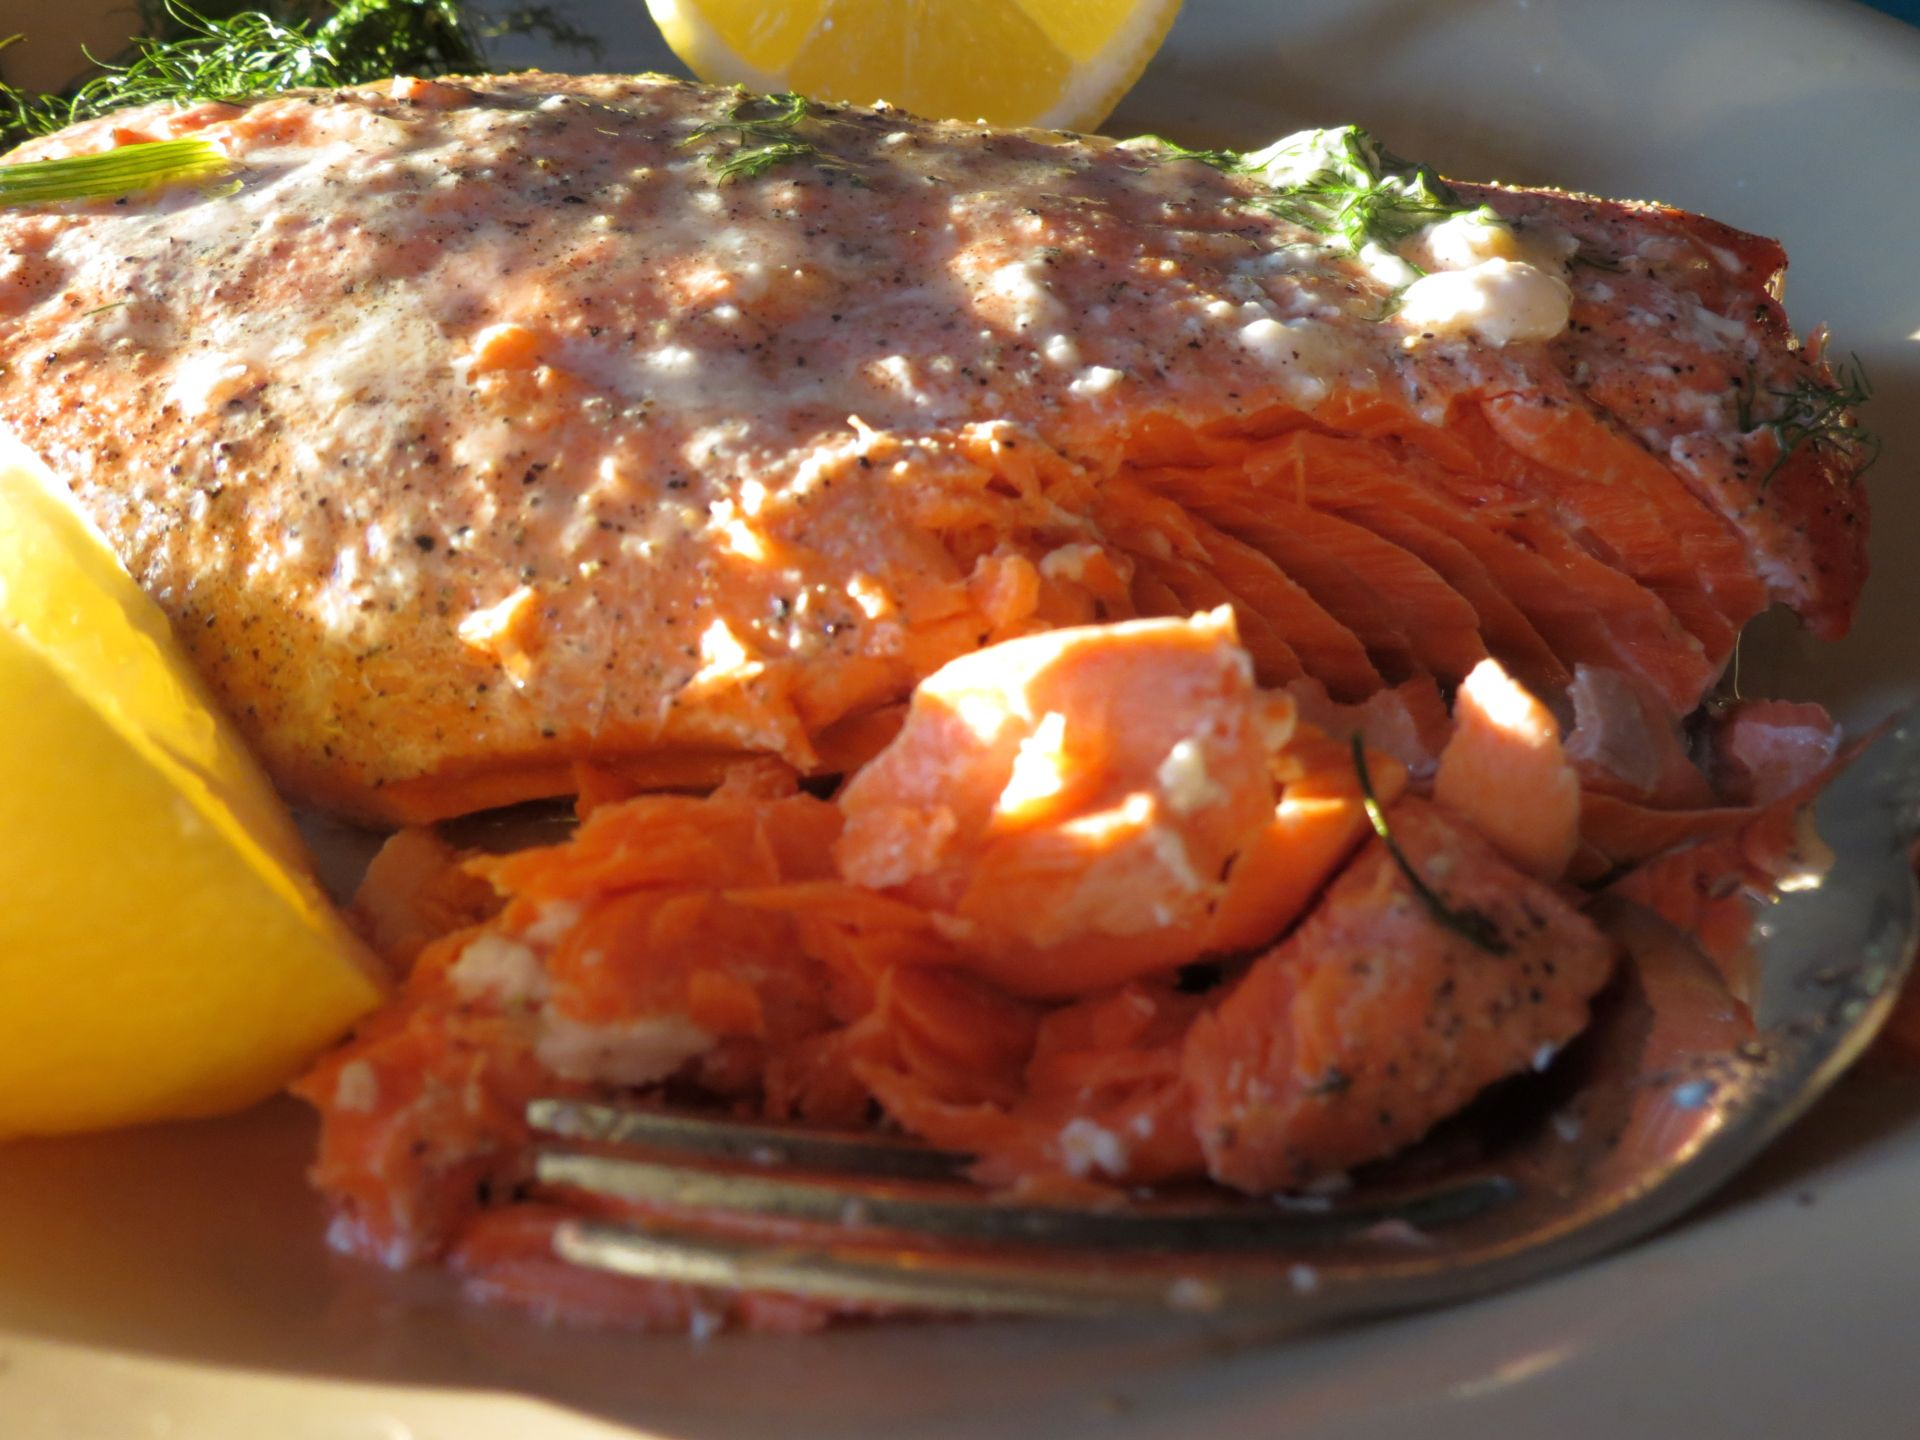 Salmon in the Oven - The Frugal Chef